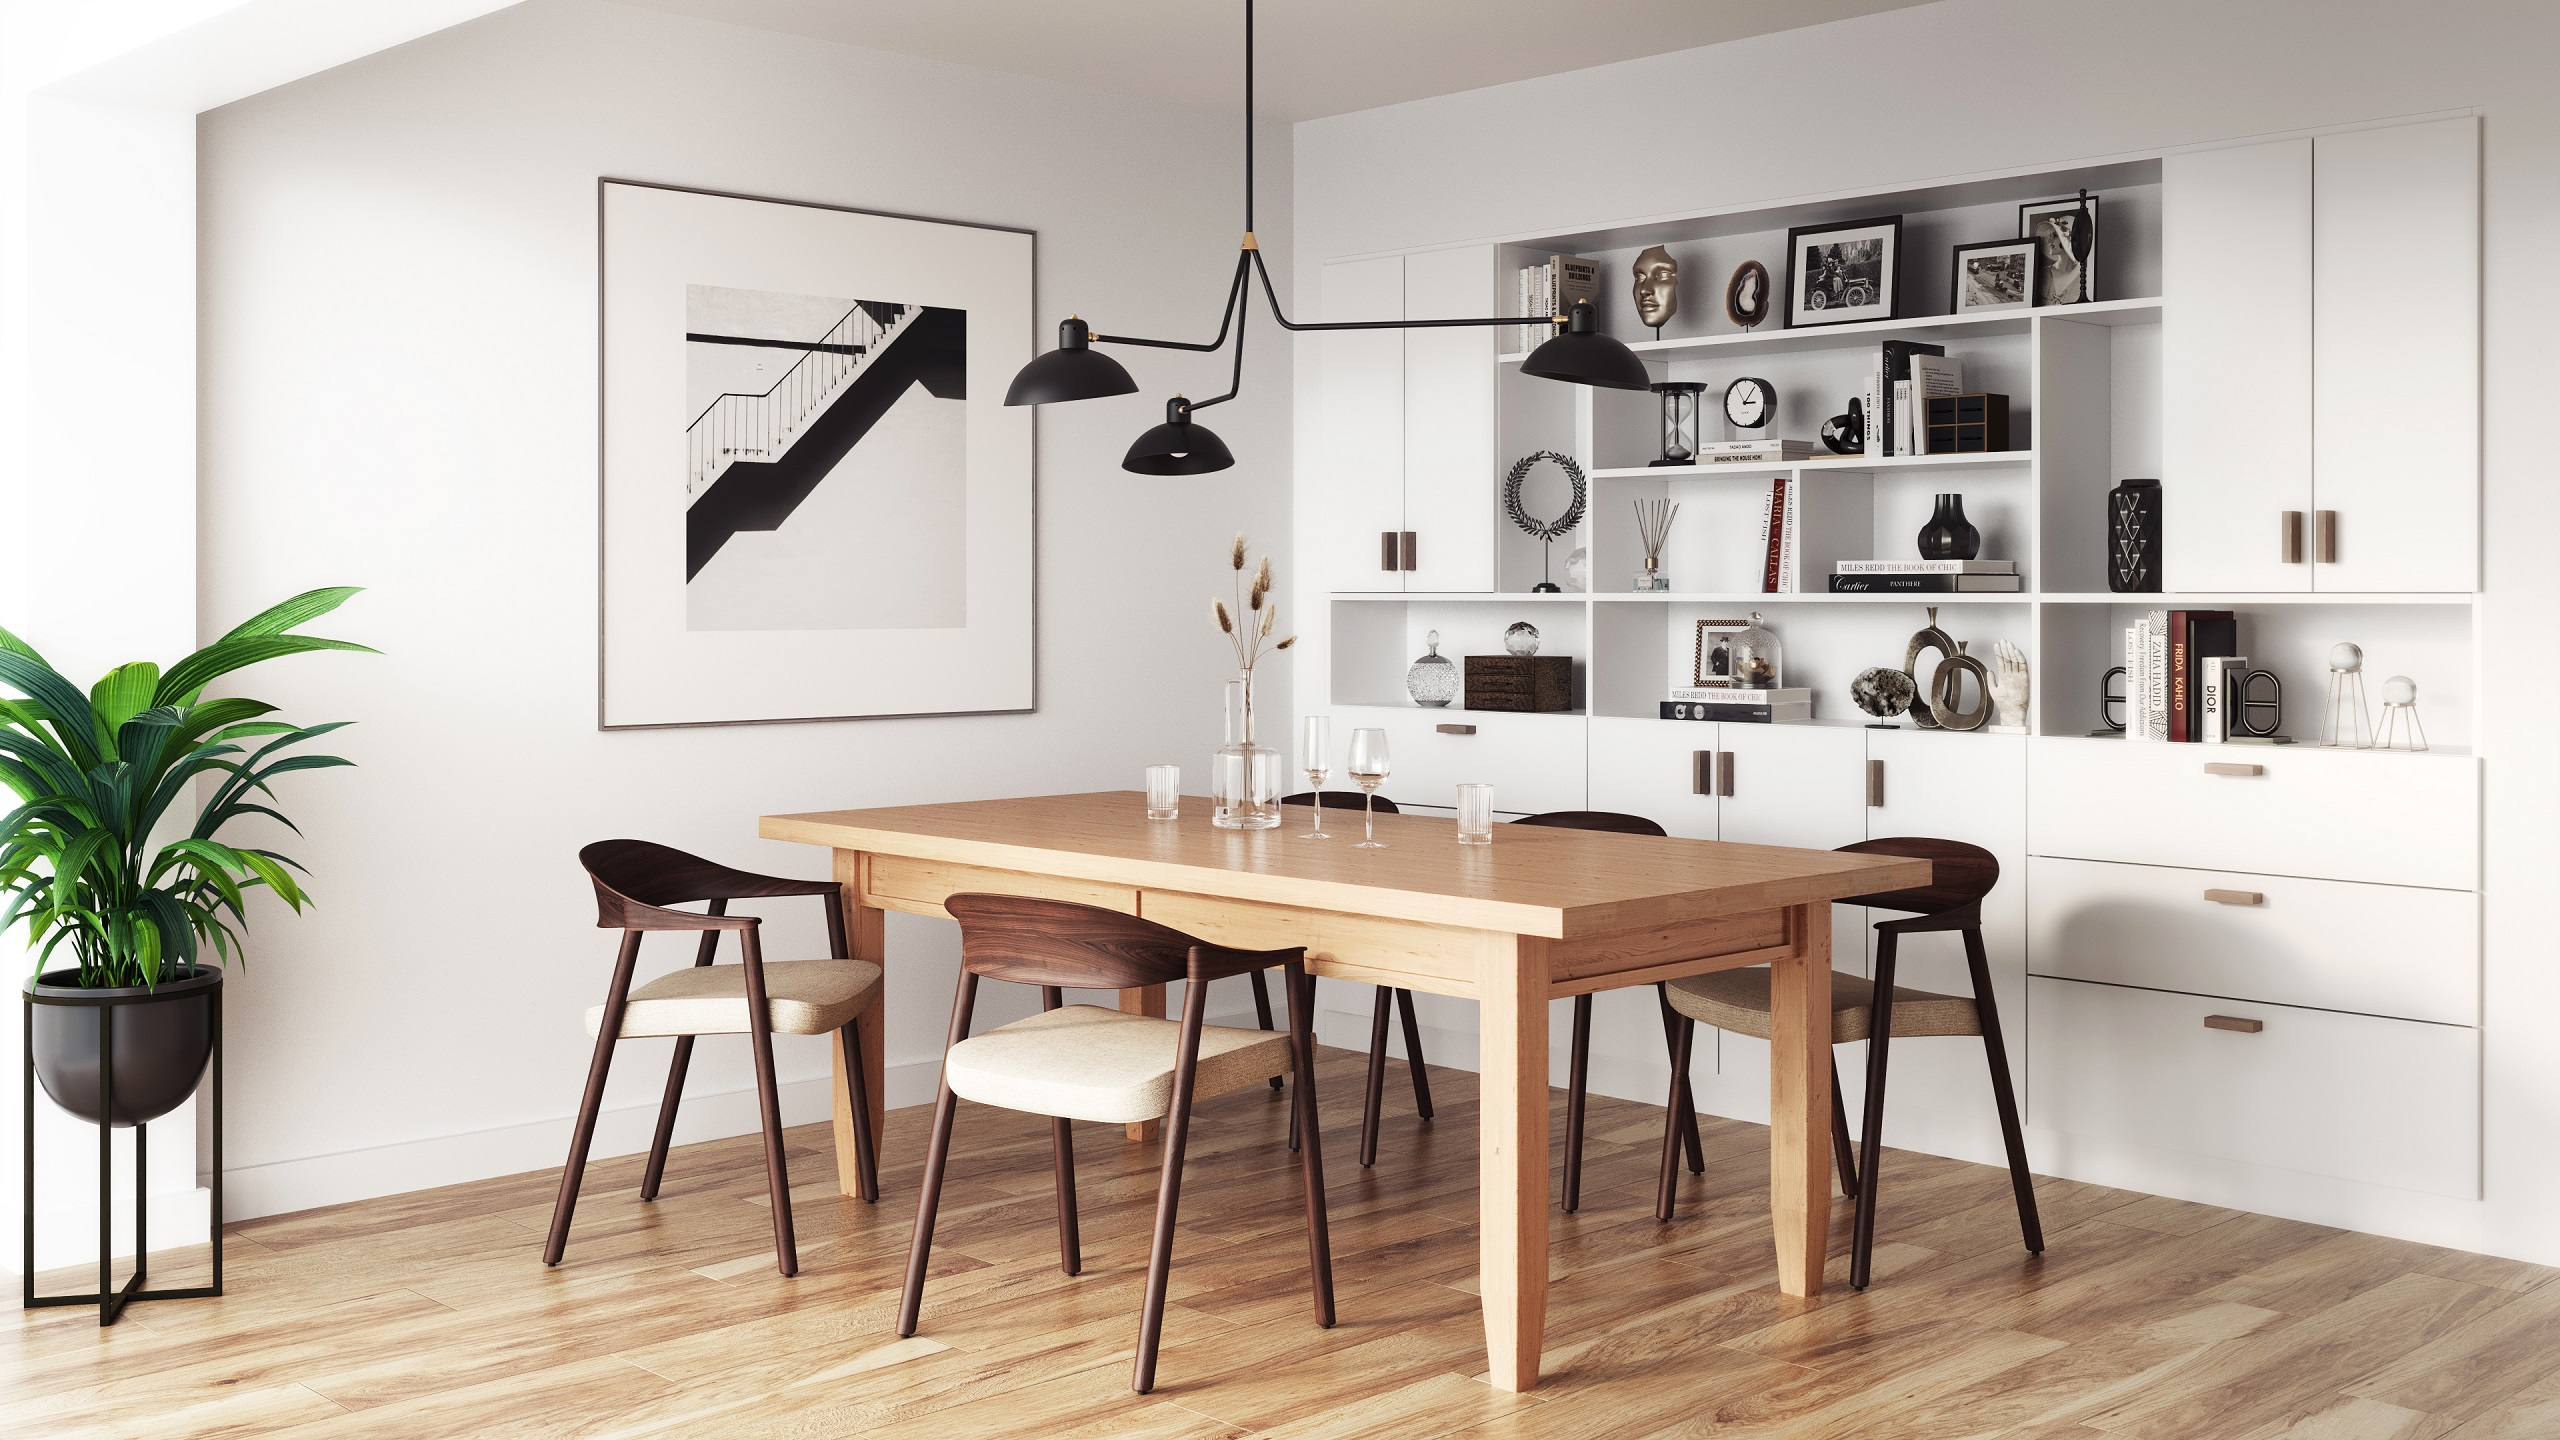 Solid wood contemporary Danish furniture table in a modern dining room